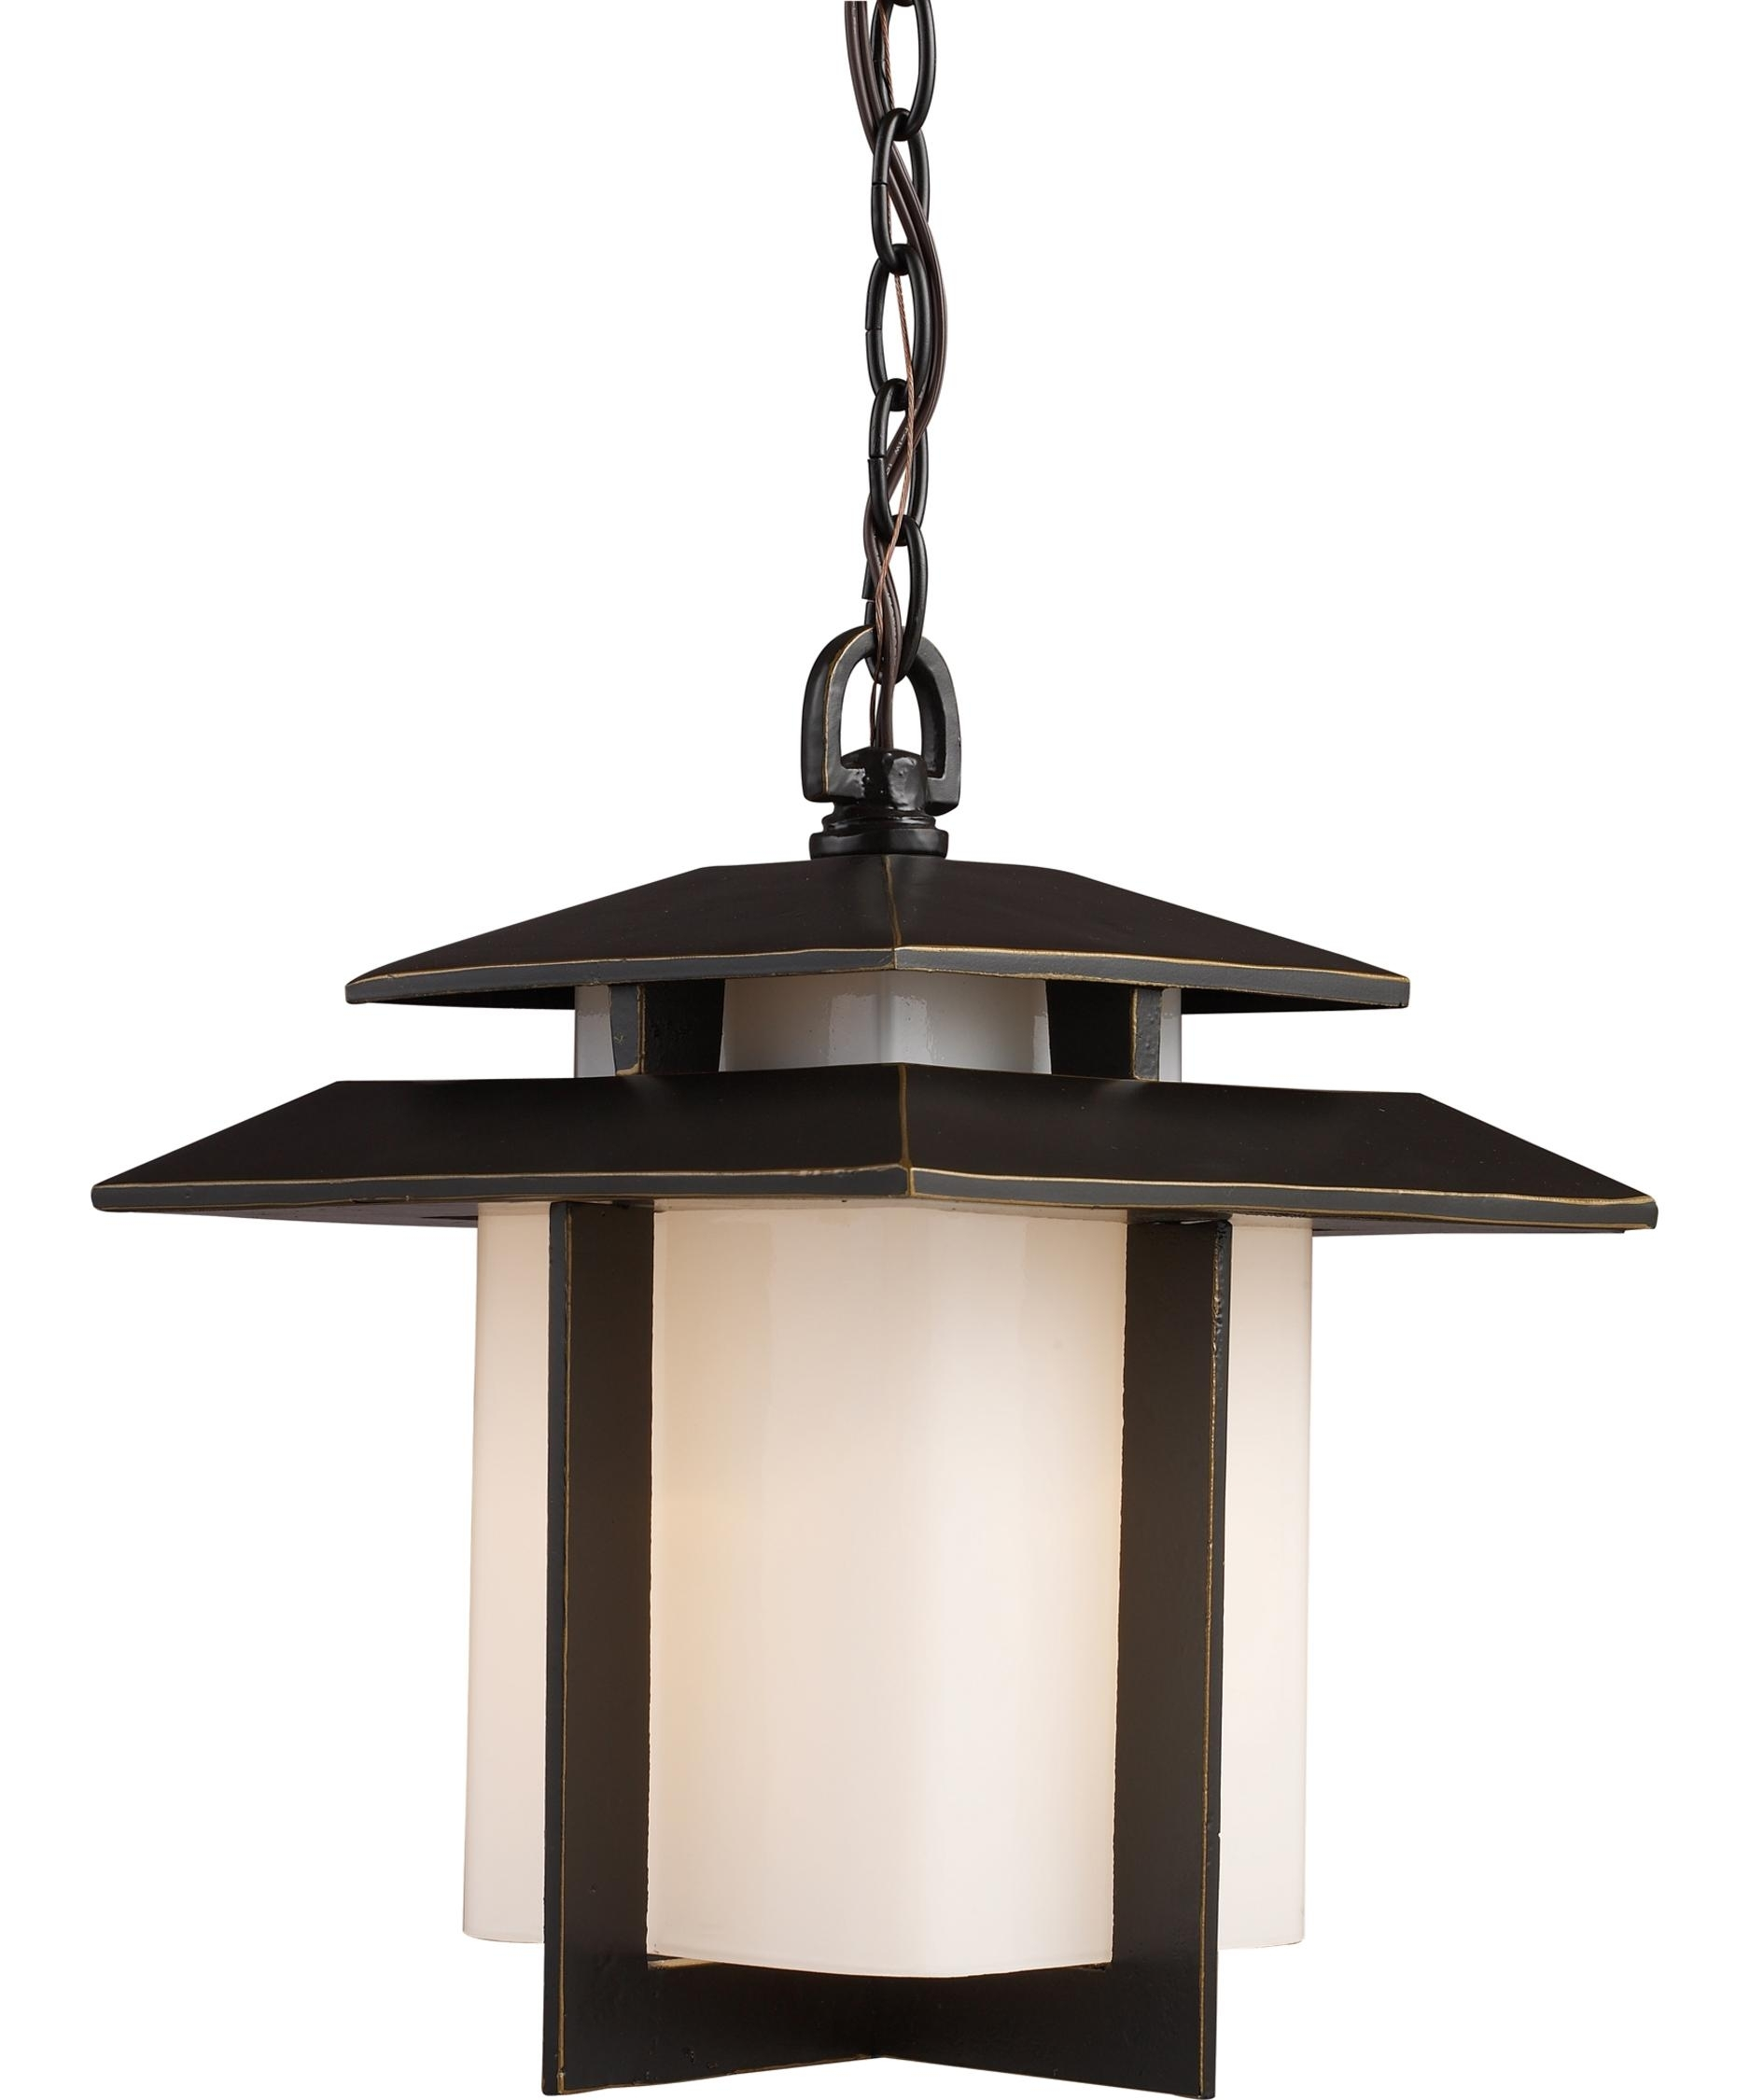 Elk Lighting 42172 1 Kanso 10 Inch Wide 1 Light Outdoor Hanging For Outdoor Lighting Japanese Lanterns (Photo 14 of 20)